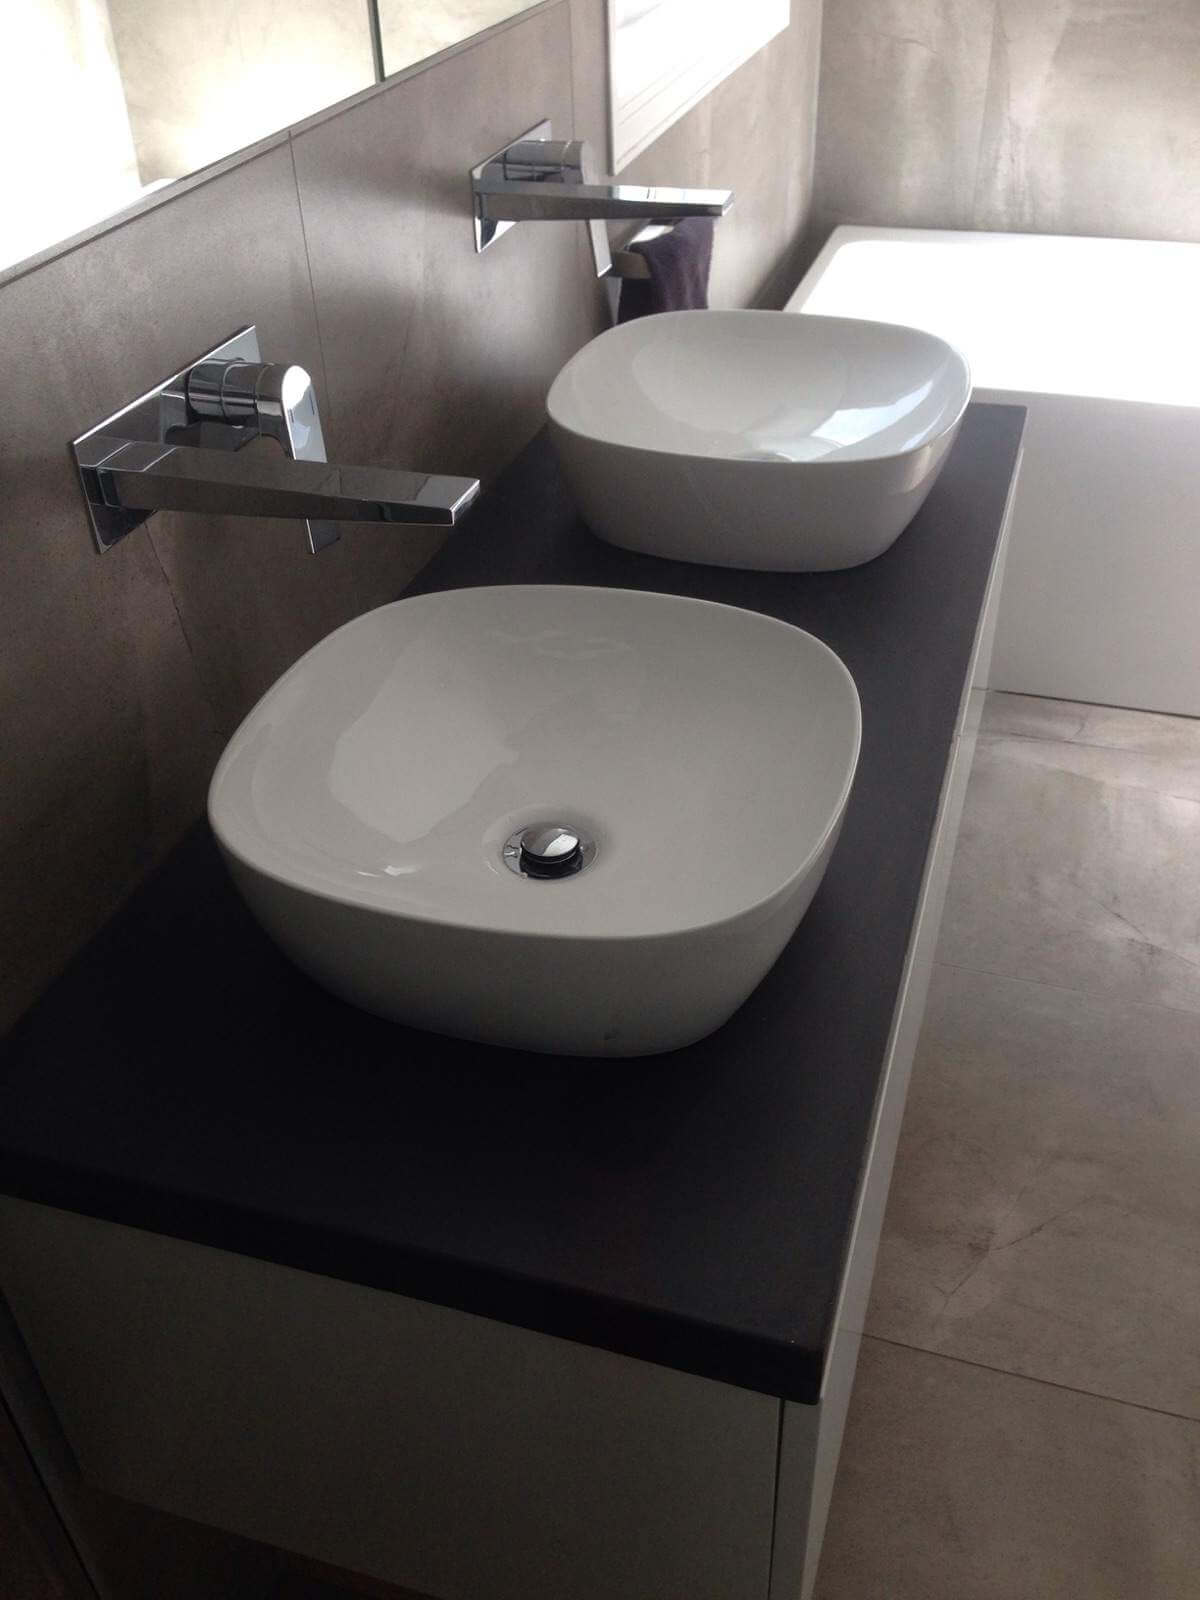 Bathroom Tiles And Sinks Snap Concrete